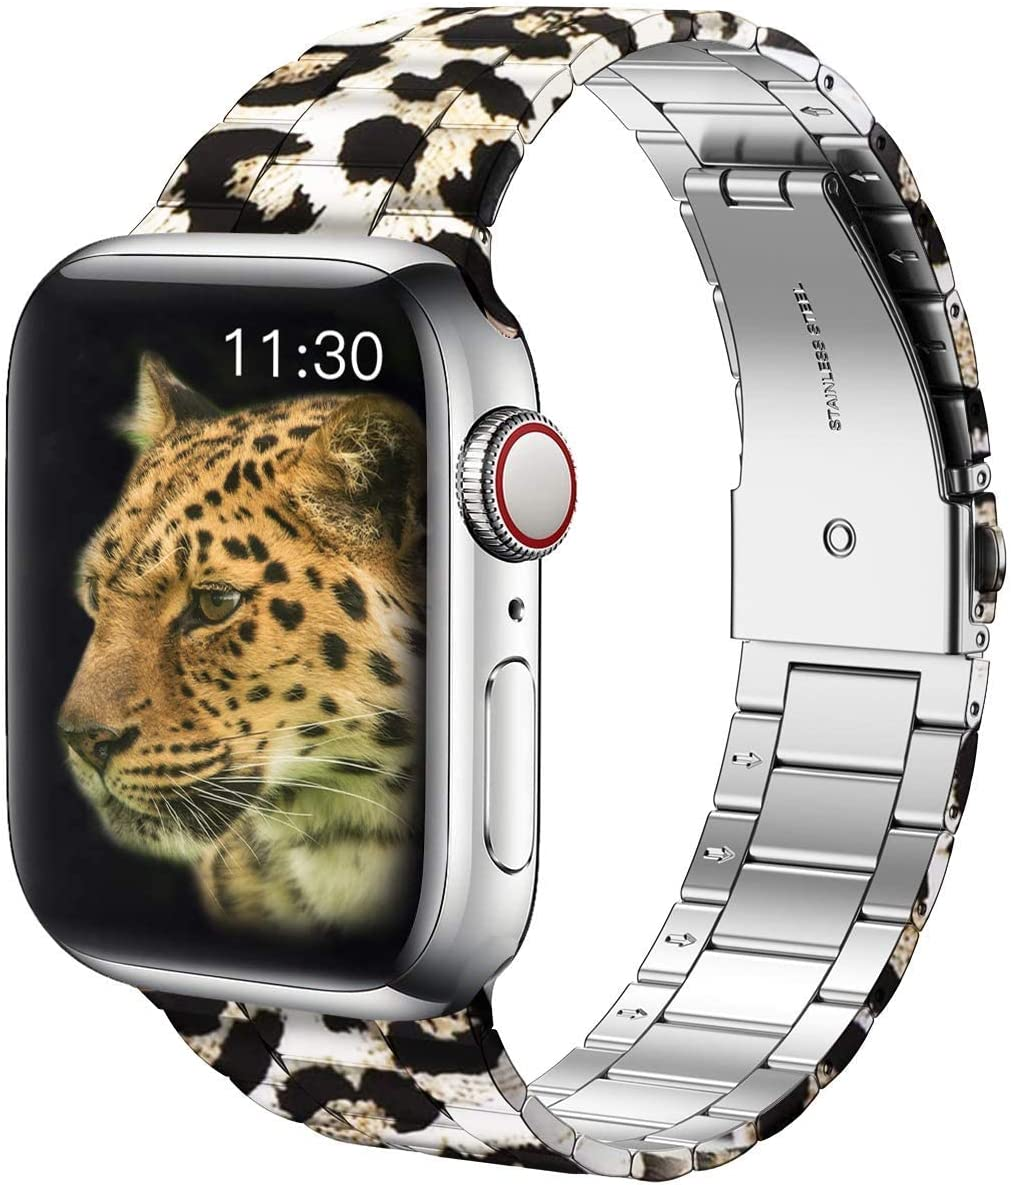 baozai Compatible with Apple Watch Band Women 41mm 40mm 38mm, Leopard Cheetah Fashion Stainless Steel Wristbandfor Apple Watch Series 7 6 5 4 3 2 1 SE, Leopard